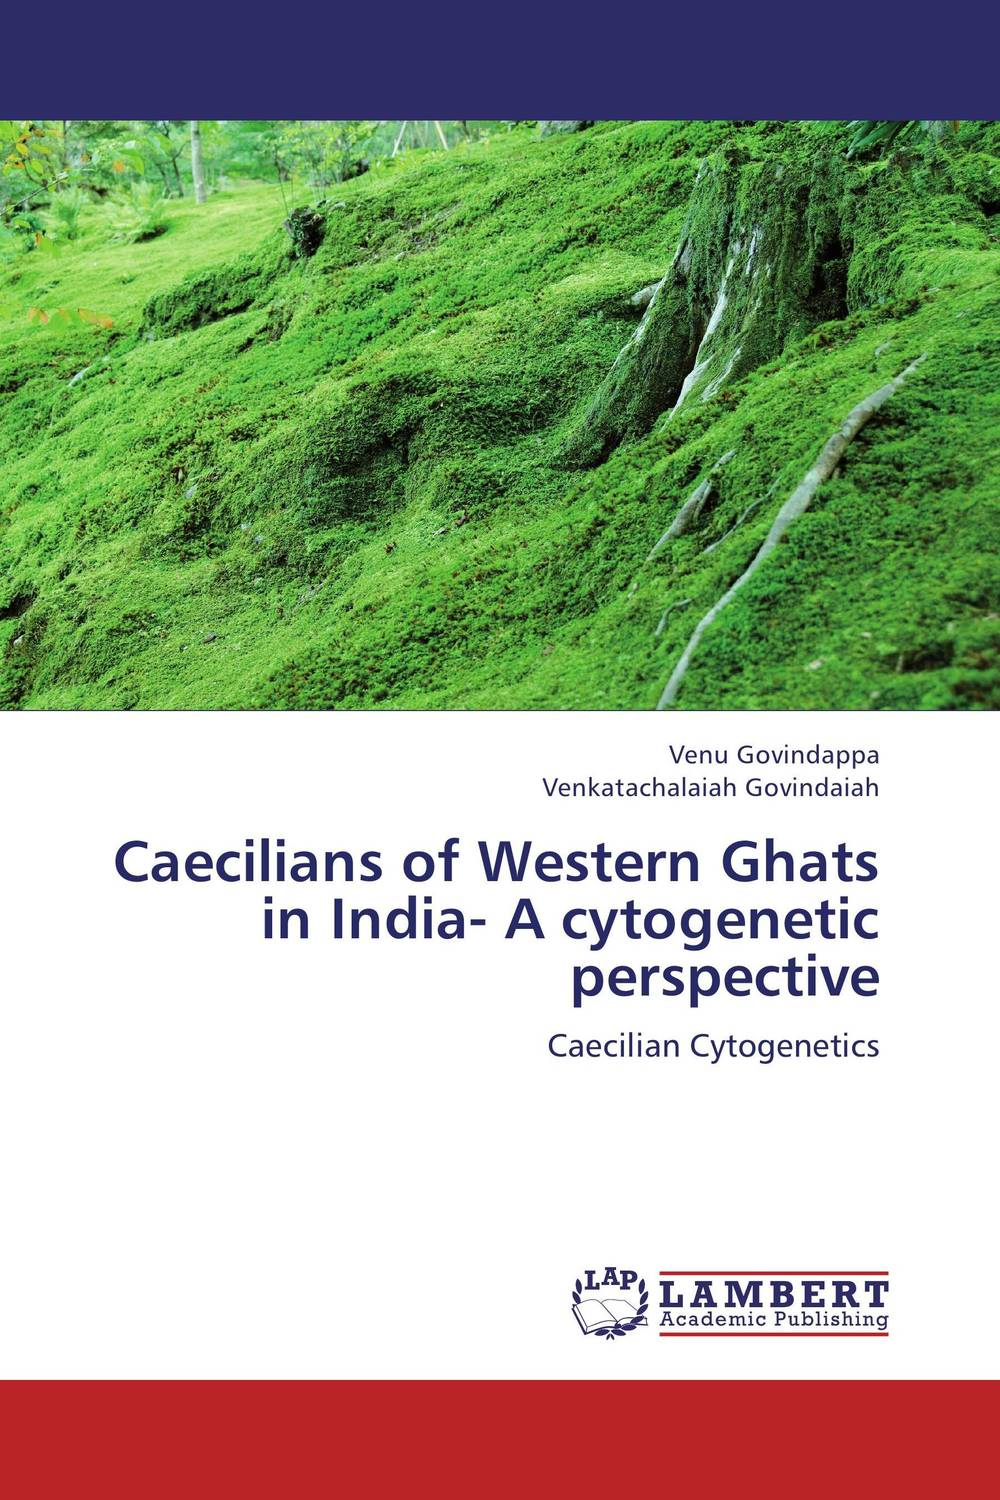 Caecilians of Western Ghats in India- A cytogenetic perspective пластиковые щипцы tony and india sm 22 150mm